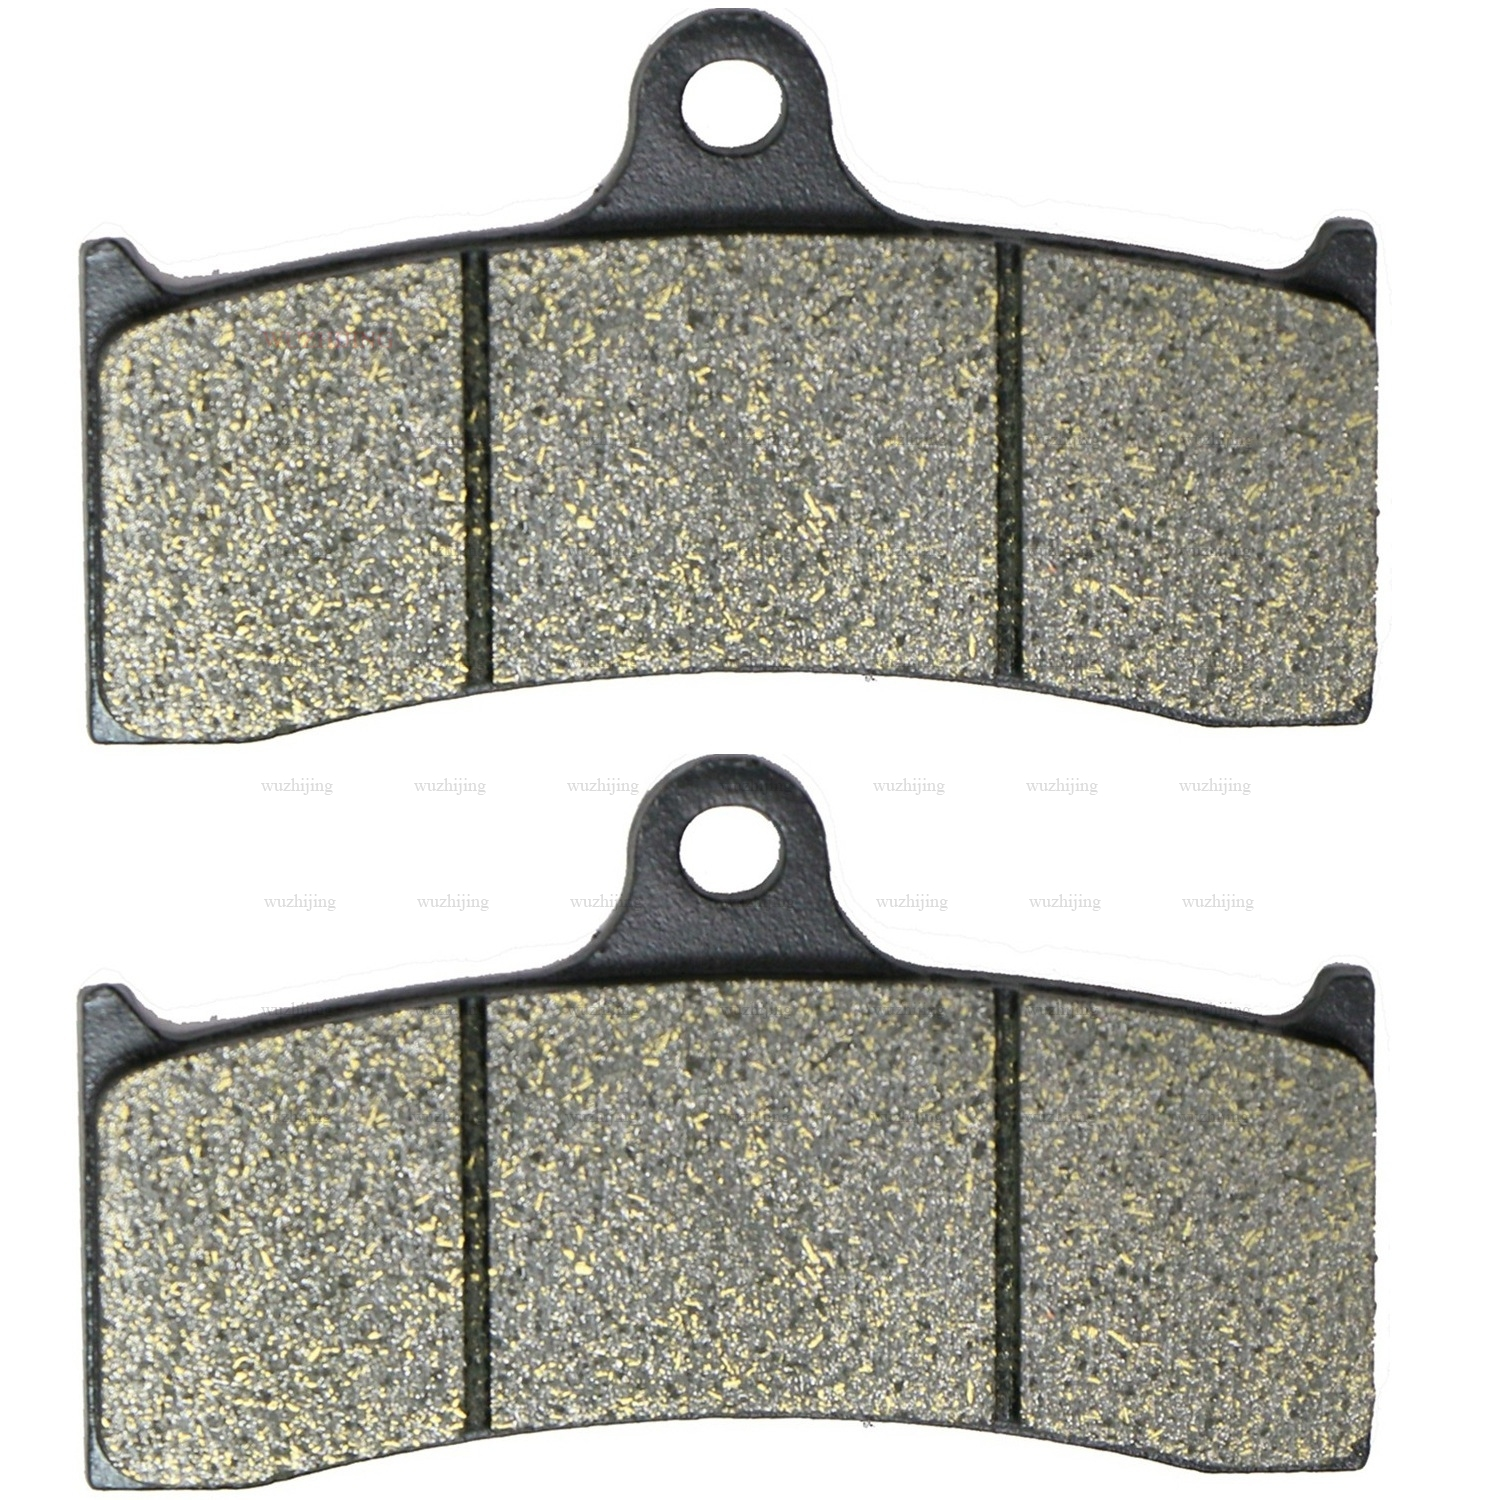 Brake Pads Set for AMERICAN IRON HORSE 6 piston 02 BEHRINGER 6 piston HHI Hawg Halters 6 piston JAY BRAKE J-Four 300-44 4 piston